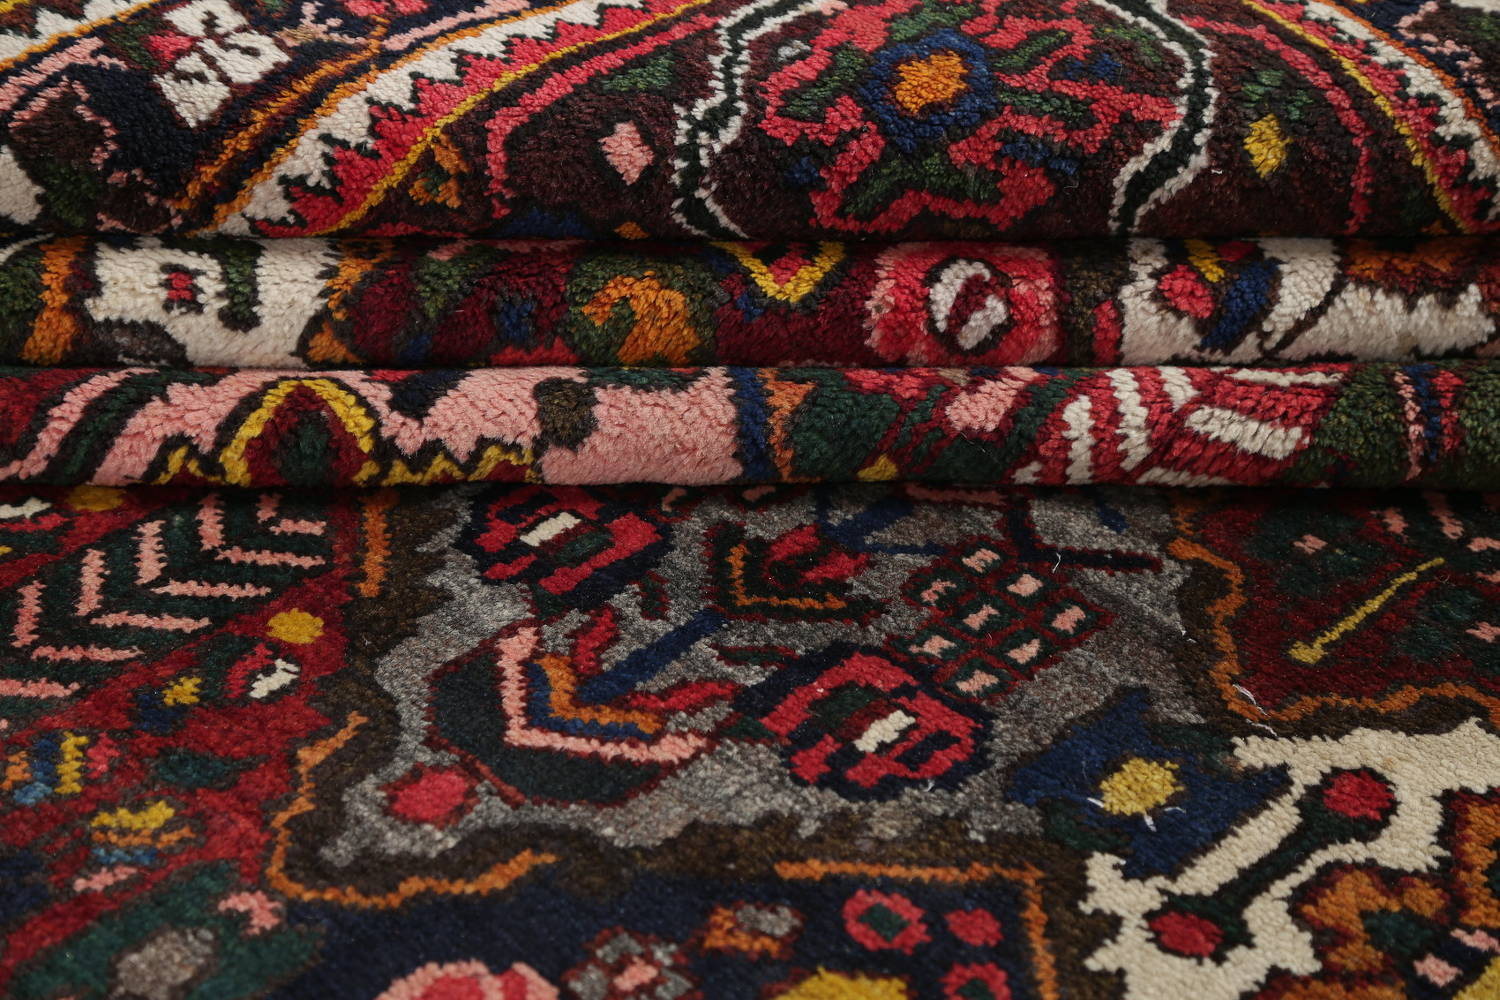 Antique Vegetable Dye Bakhtiari Persian Hand-Knotted Area Rug 7x12 image 18